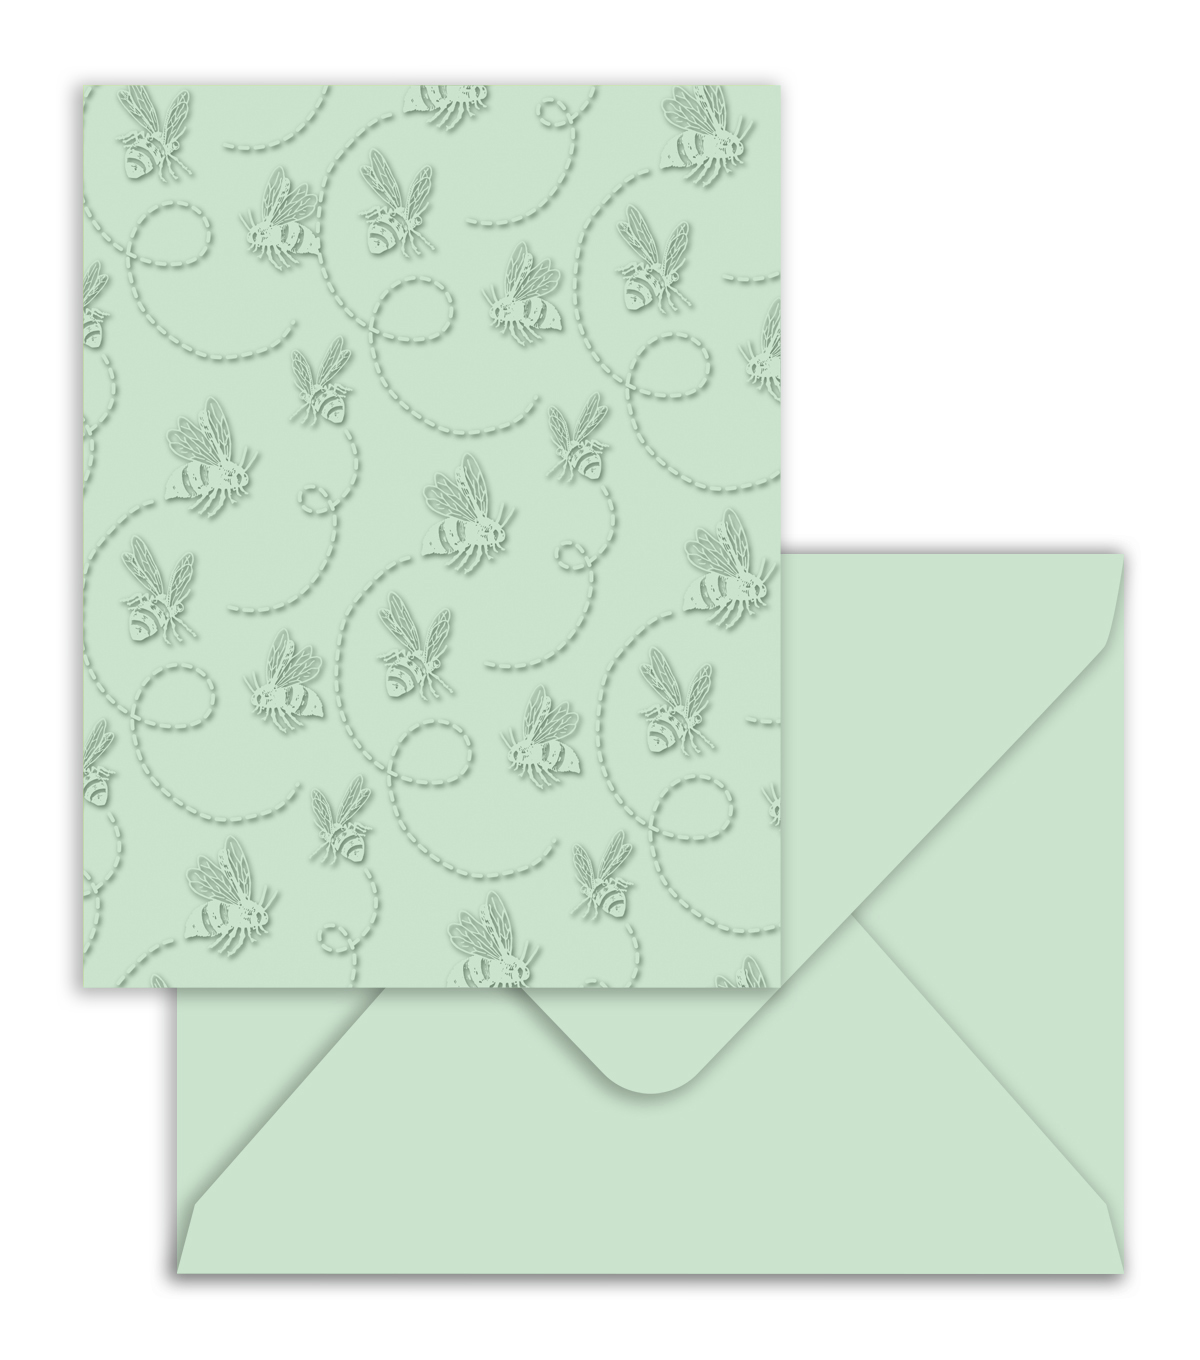 Park Lane A2 Embossed Cards & Envelopes-Light Turquoise